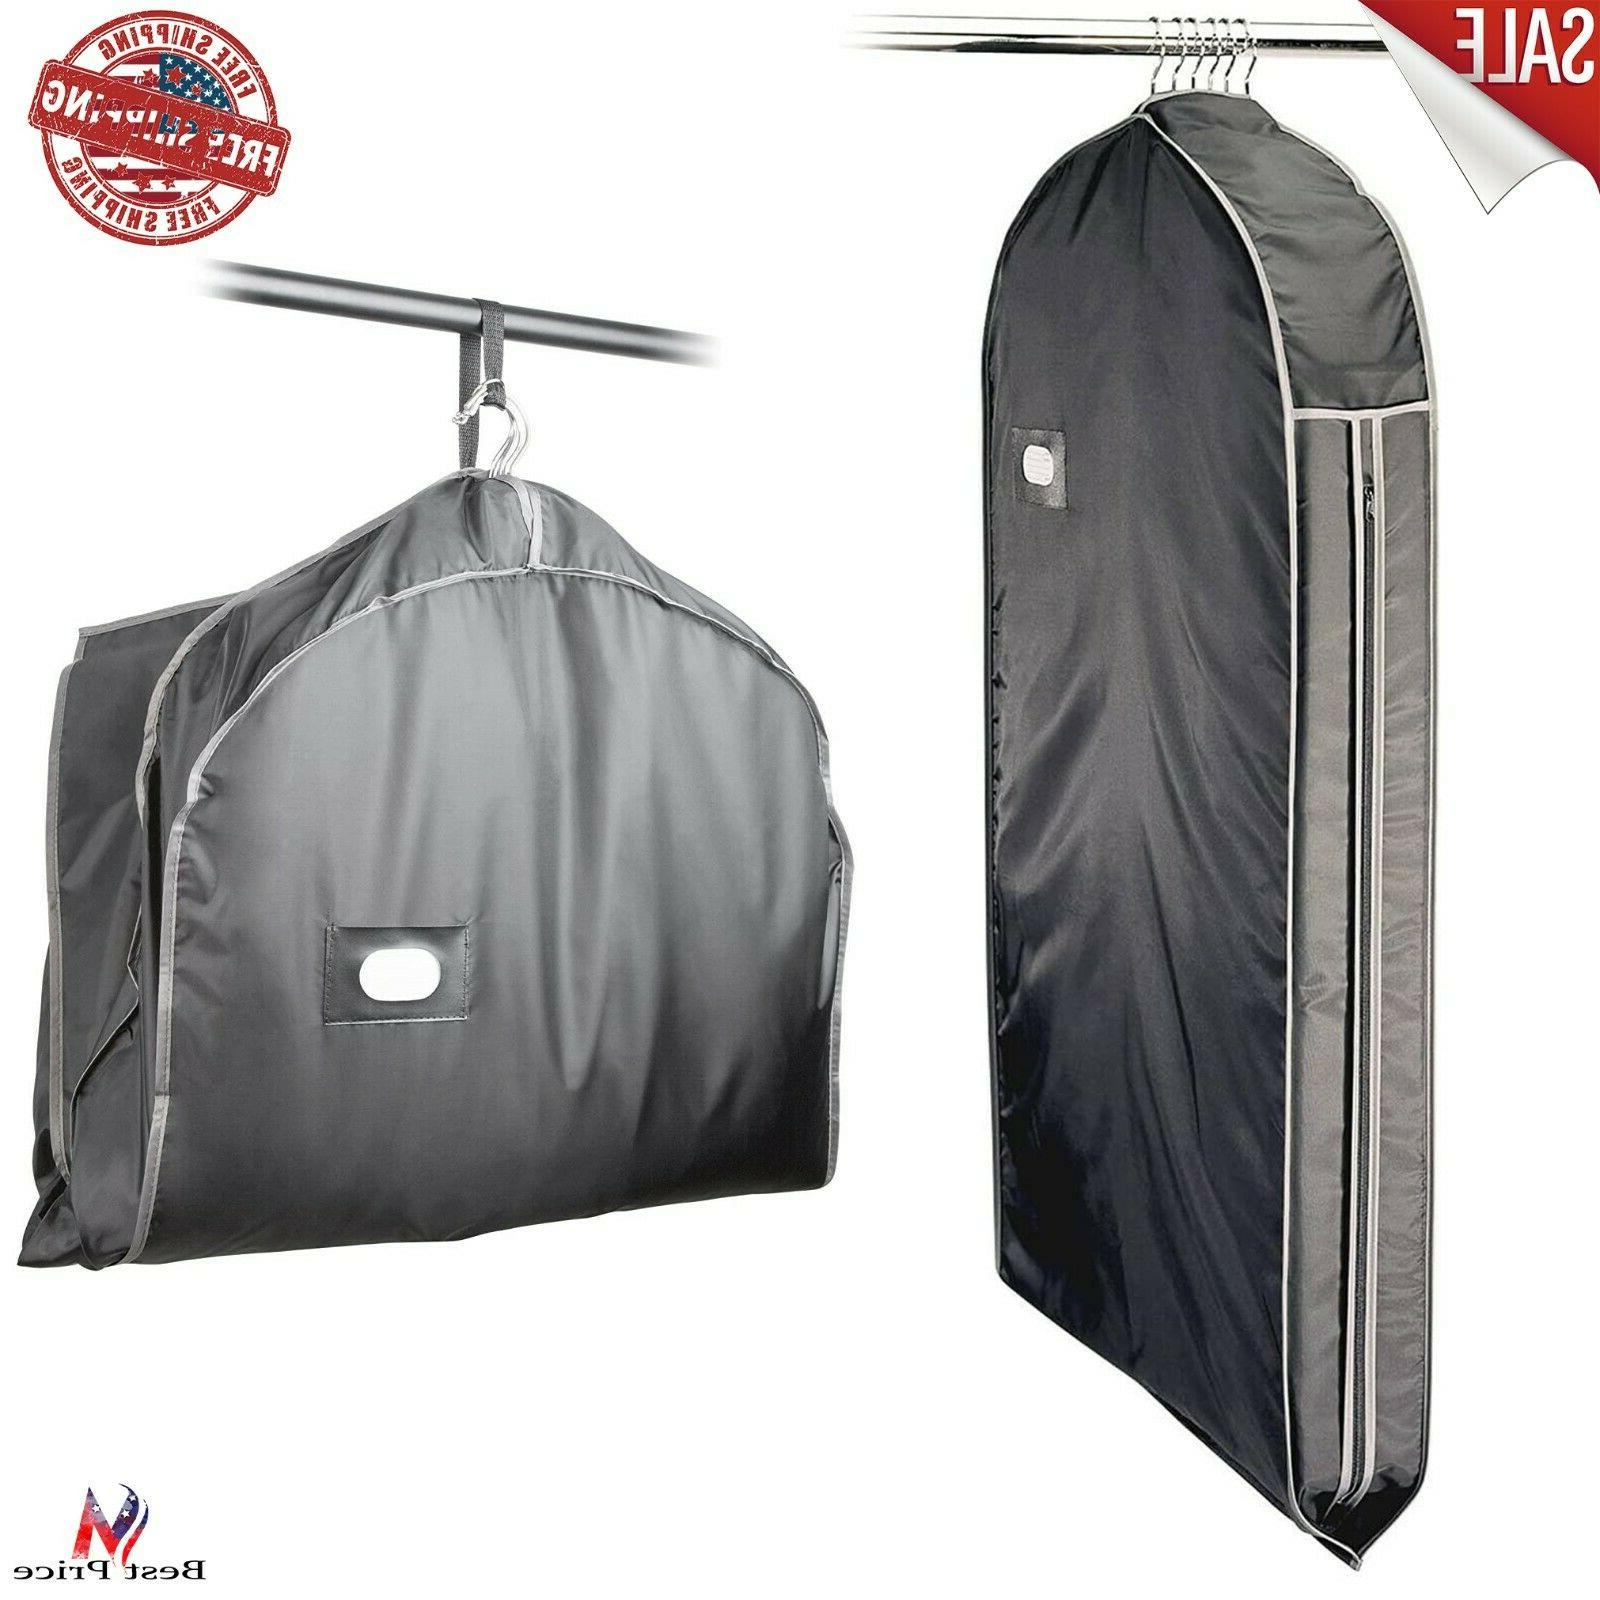 solid garment travel bag suit with organizer